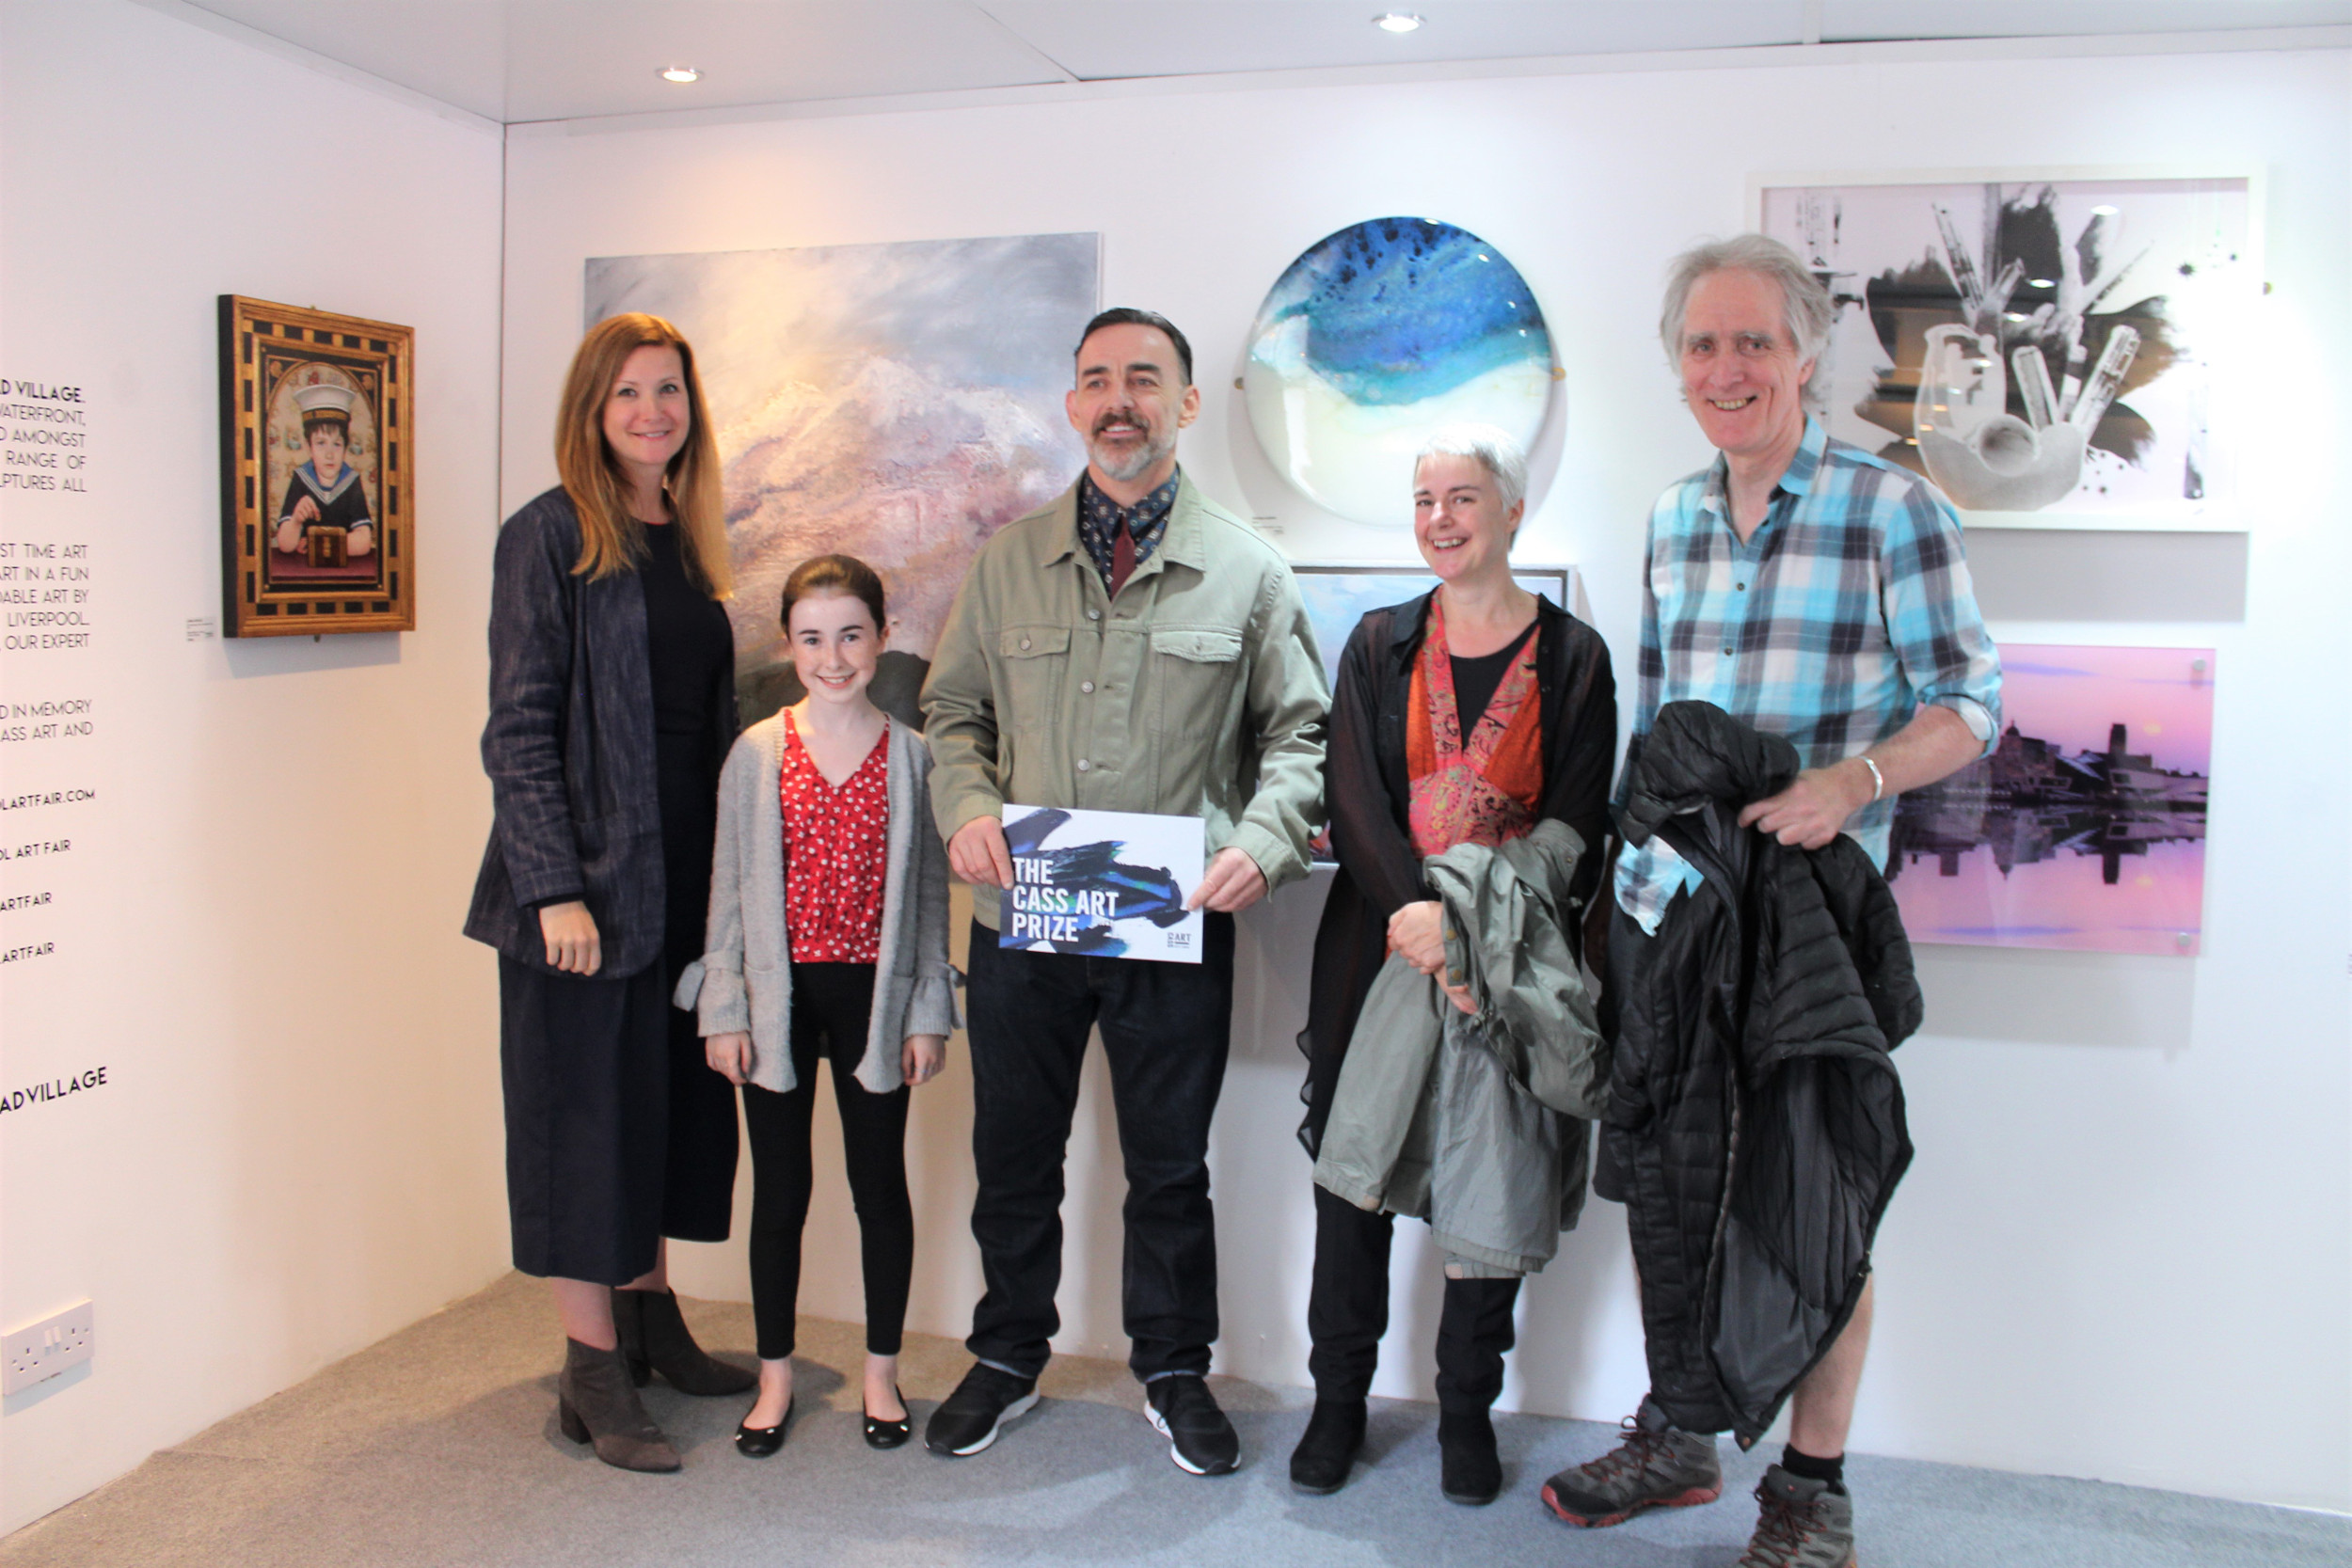 Liverpool Art Fair 2018 Peoples Choice Award